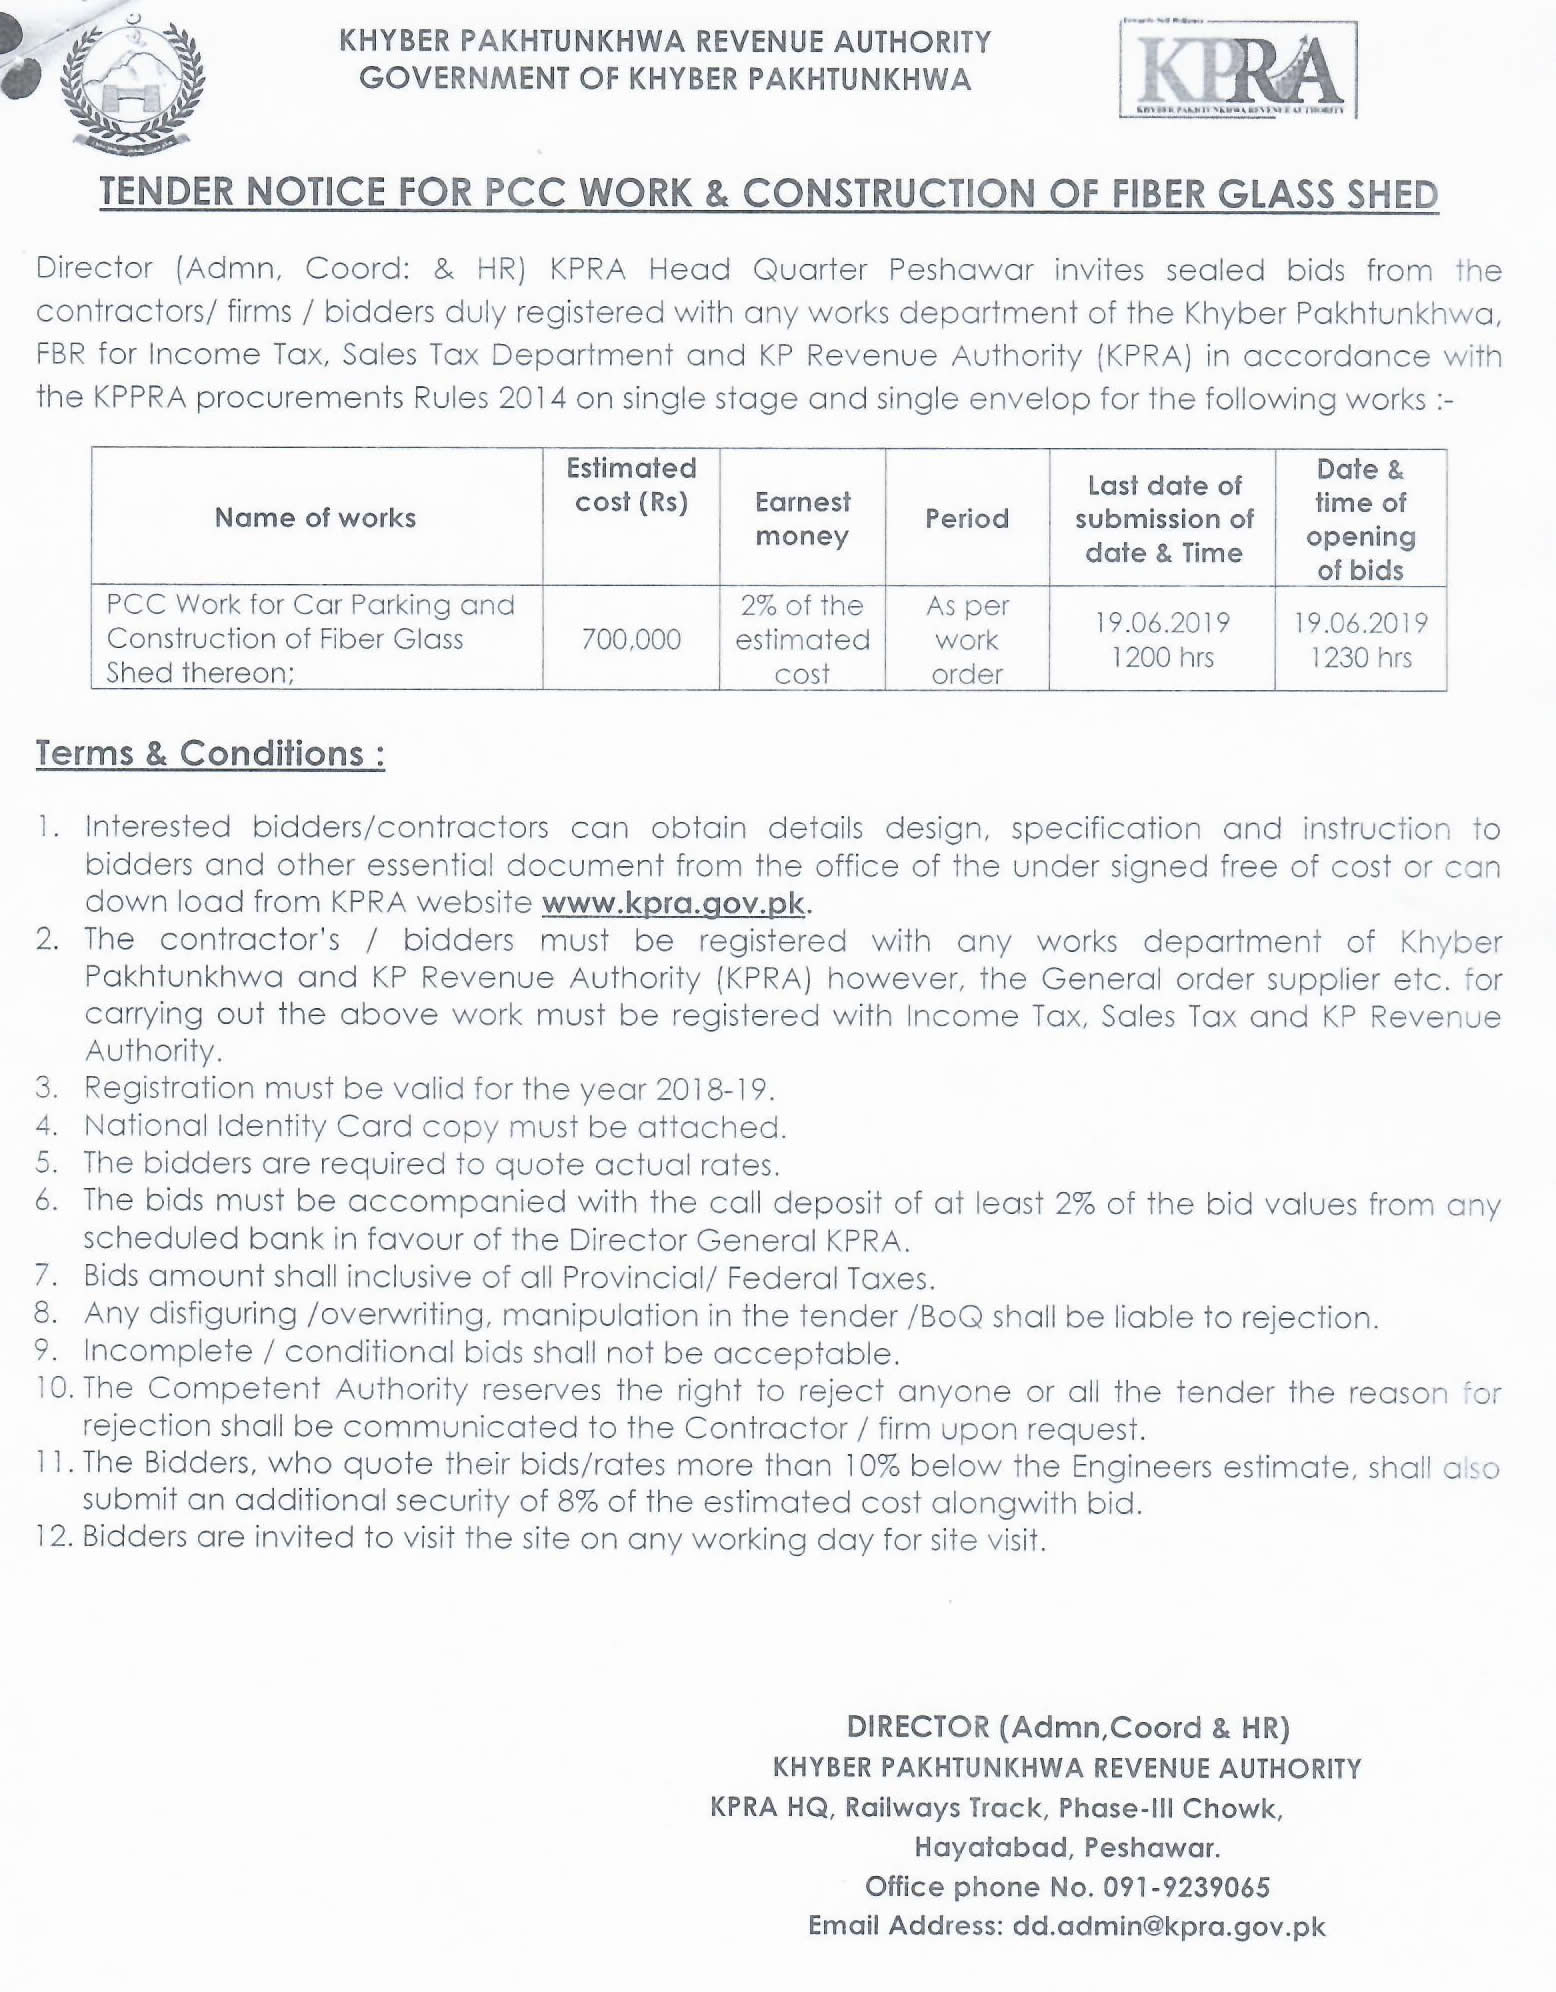 Tender Notice for PPC Work & Construction of Fiber Glass Shed